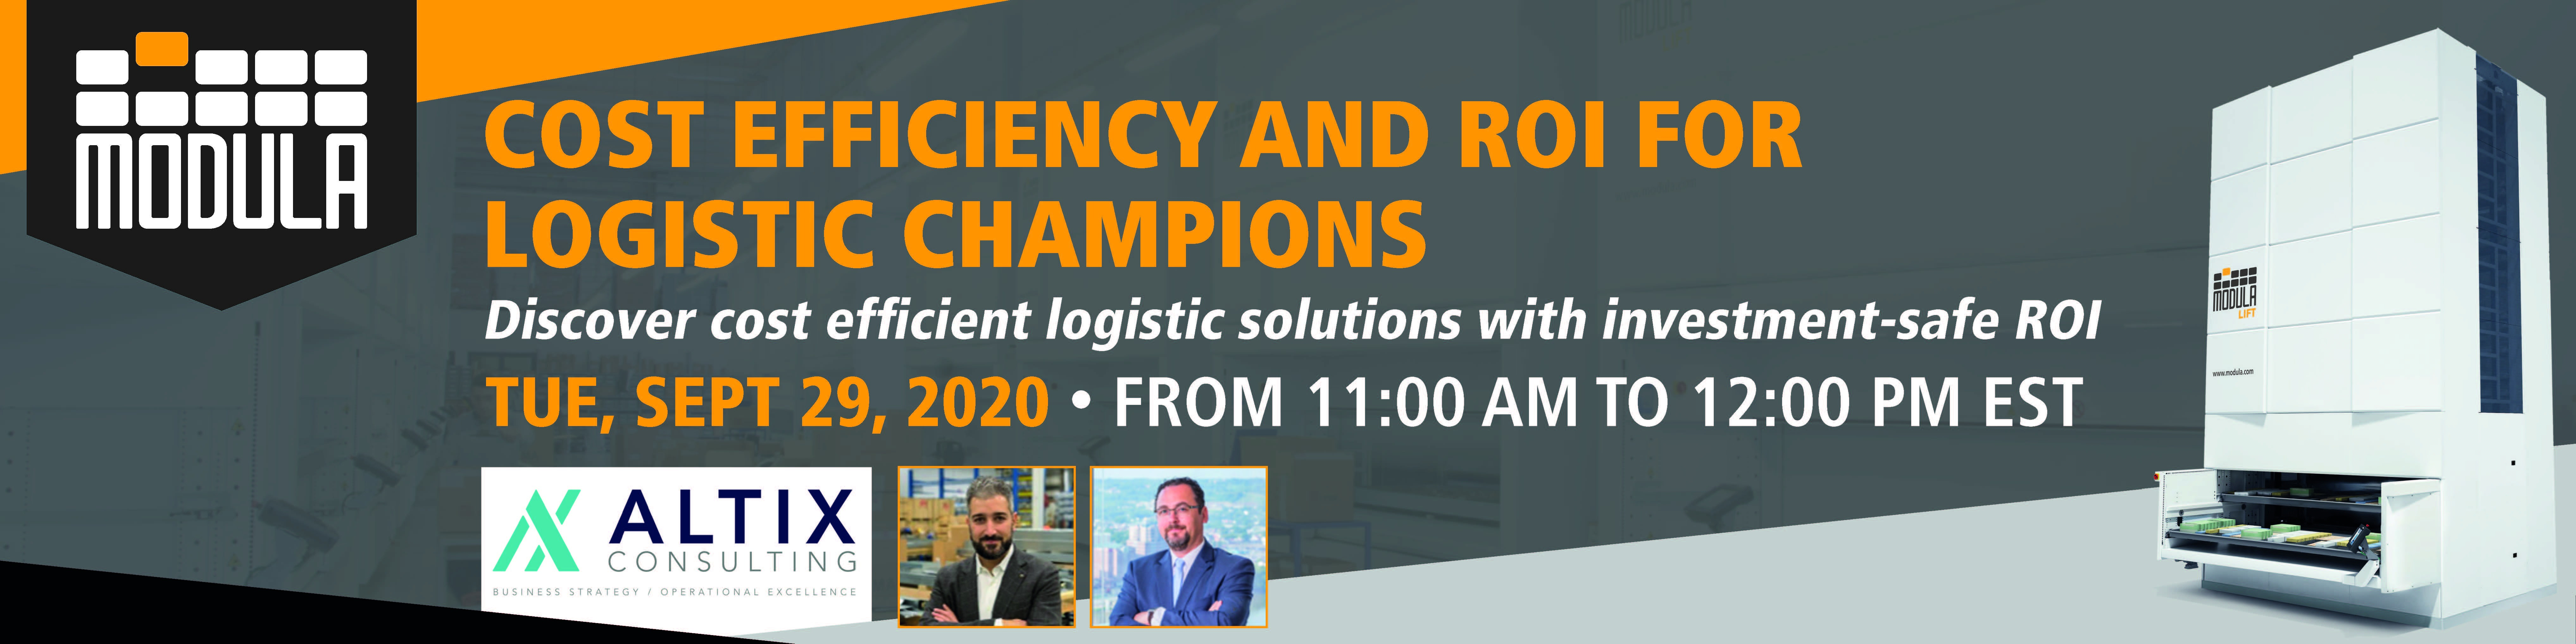 Webinar USA Cost efficiency and ROI